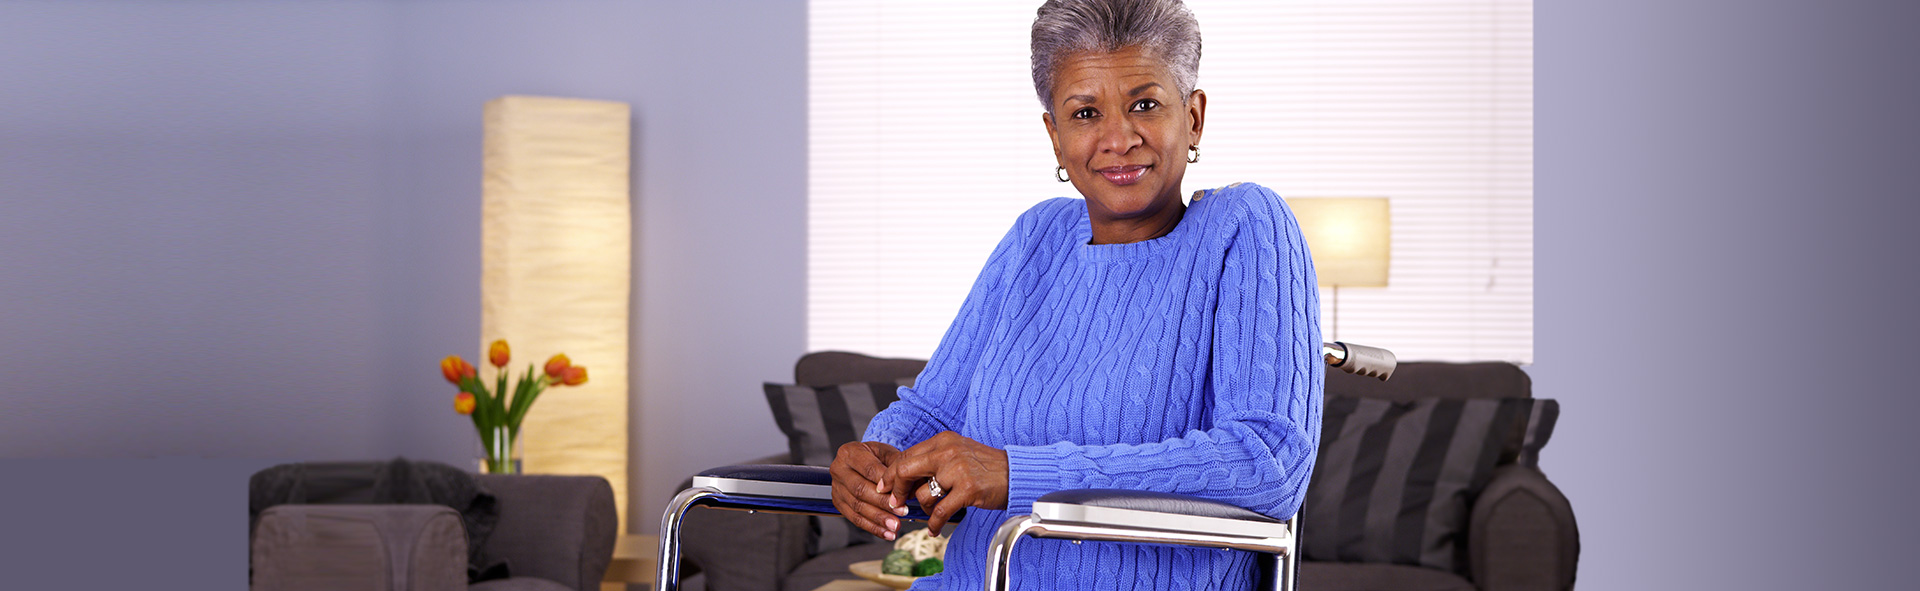 African-American woman in wheelchair